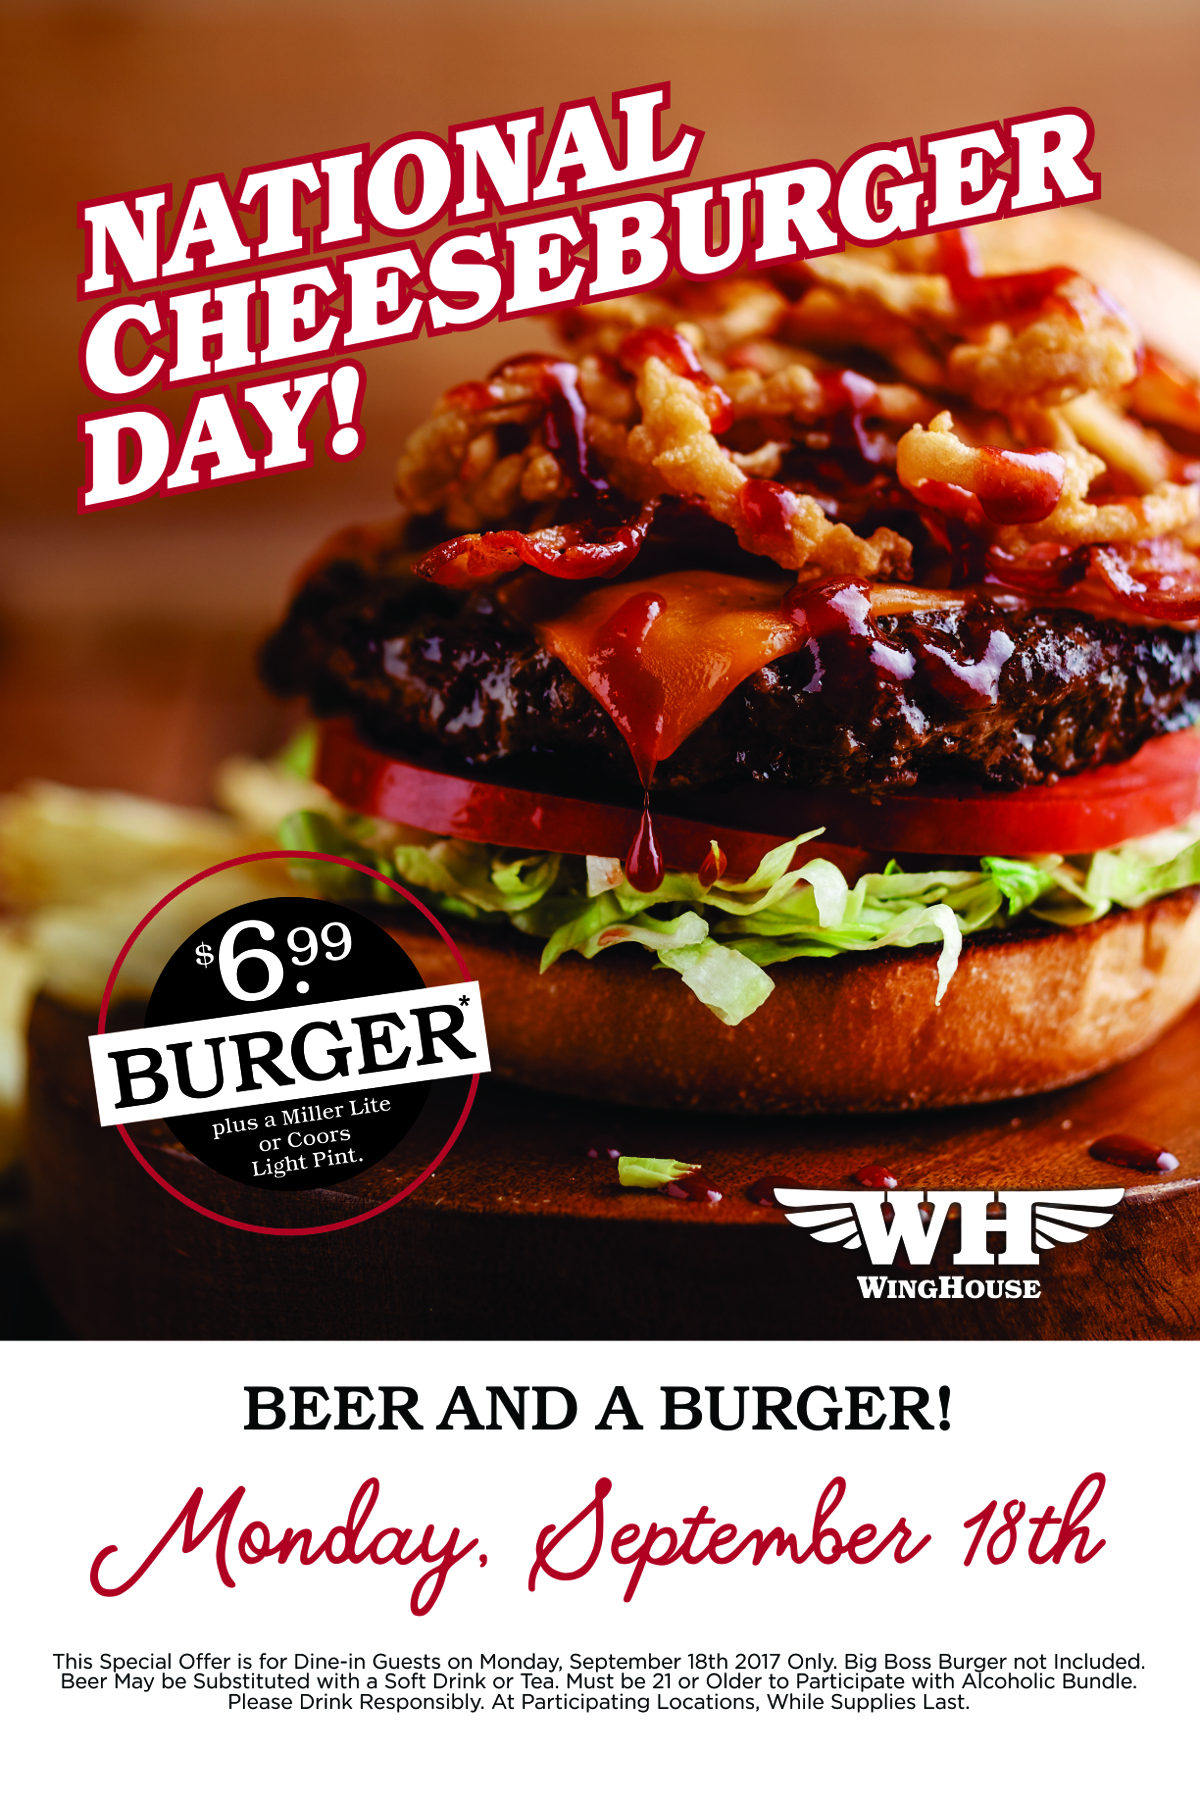 Celebrate National Cheeseburger Day Monday, September 18th at The WingHouse Bar + Grill